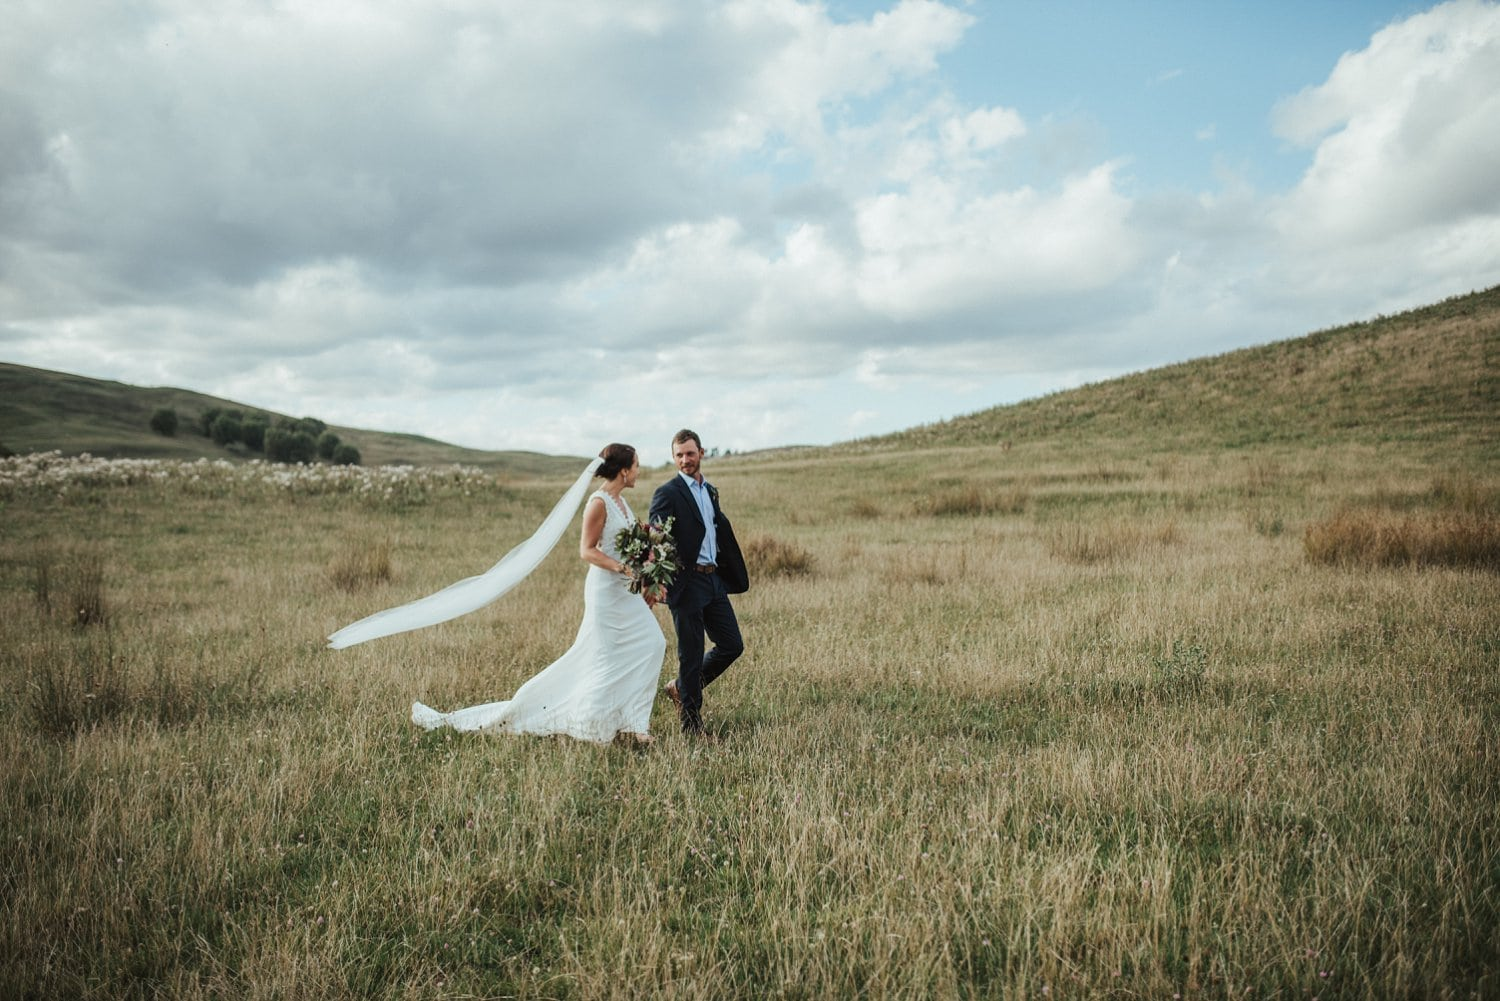 Nic & Pete - Pourere Beach & Family Farm Wedding, Hawke's Bay | www.meredithlord.com